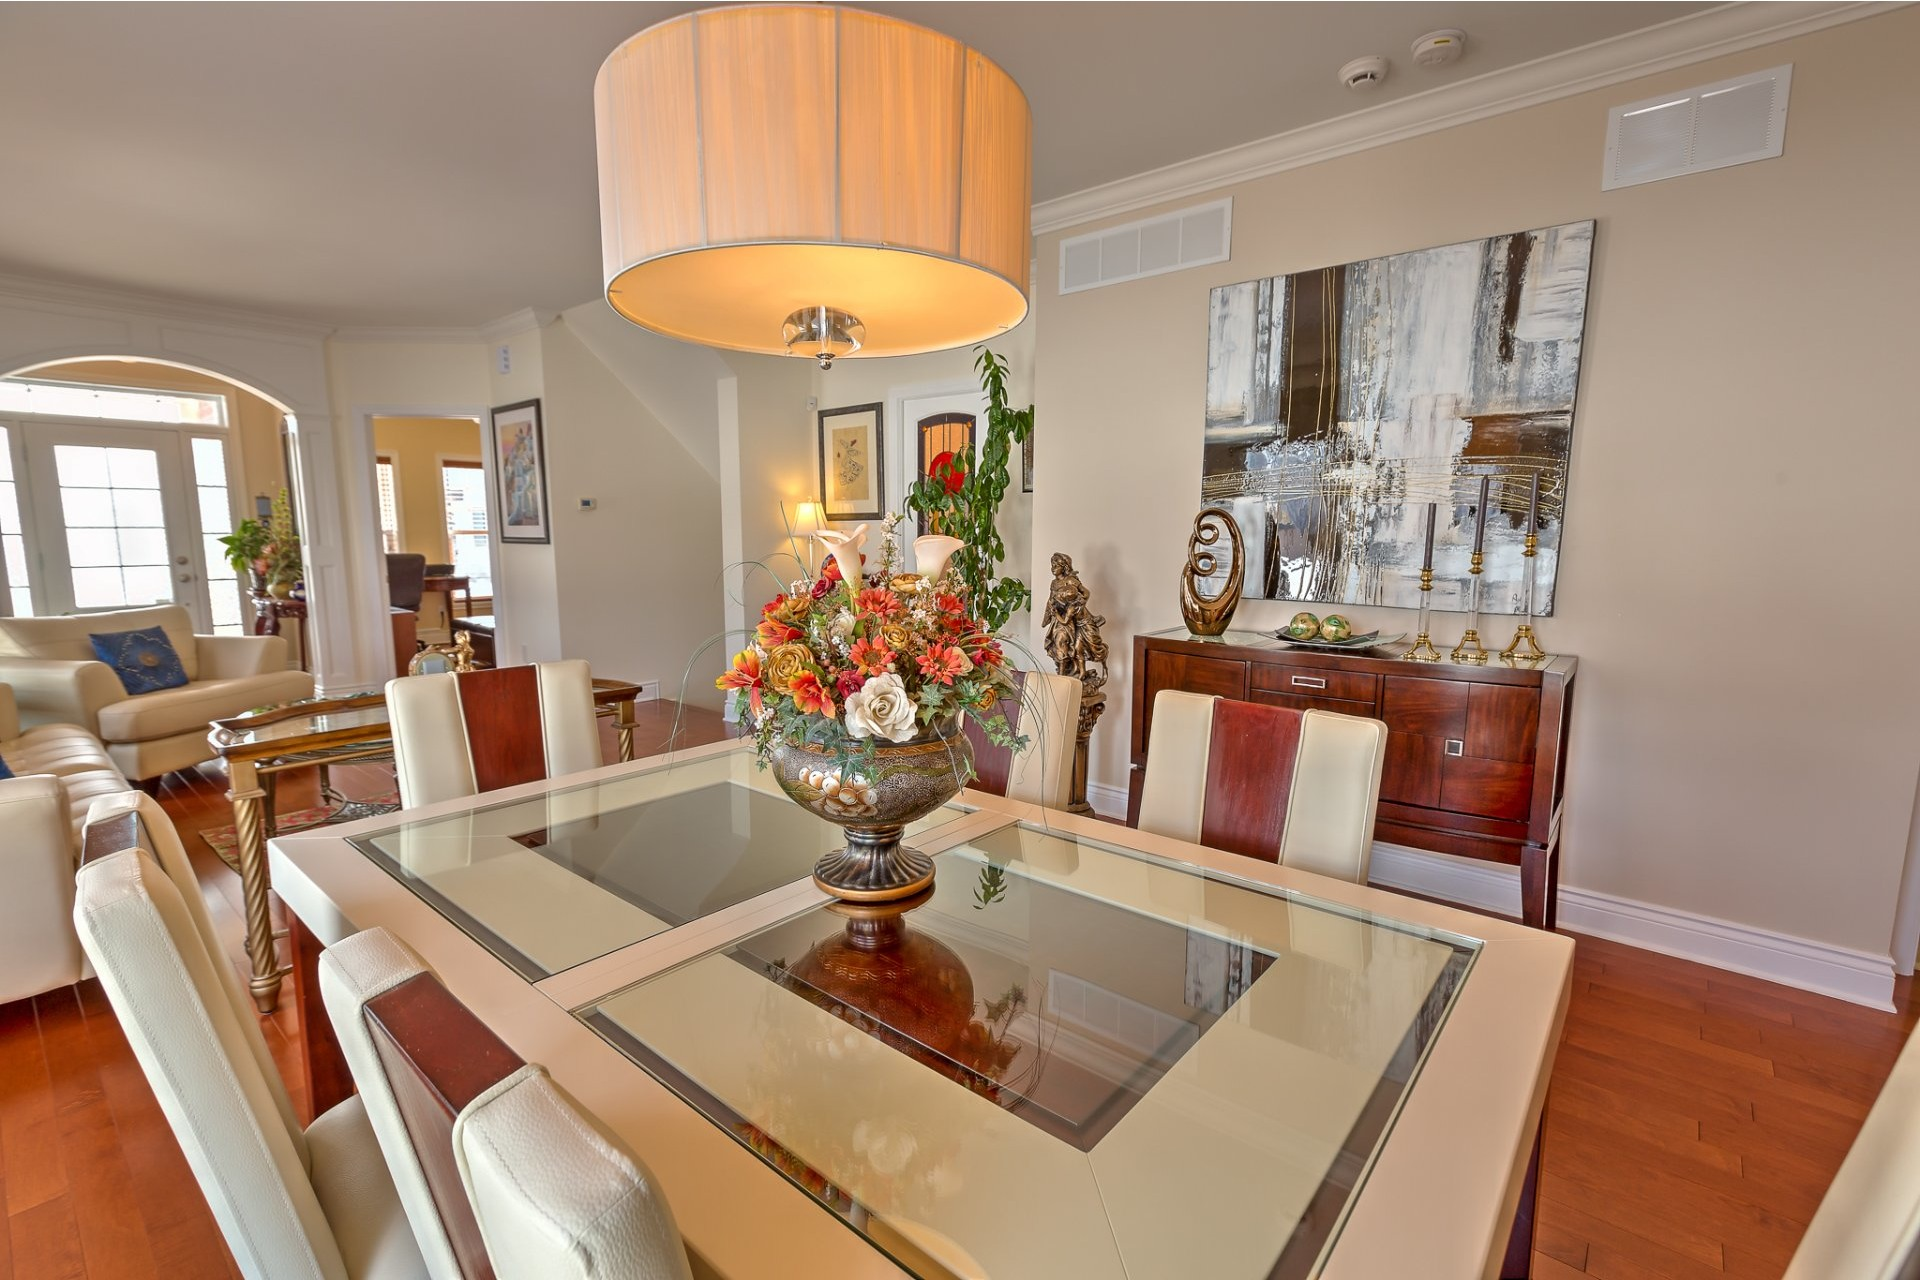 image 5 - Apartment For sale Brossard - 7 rooms